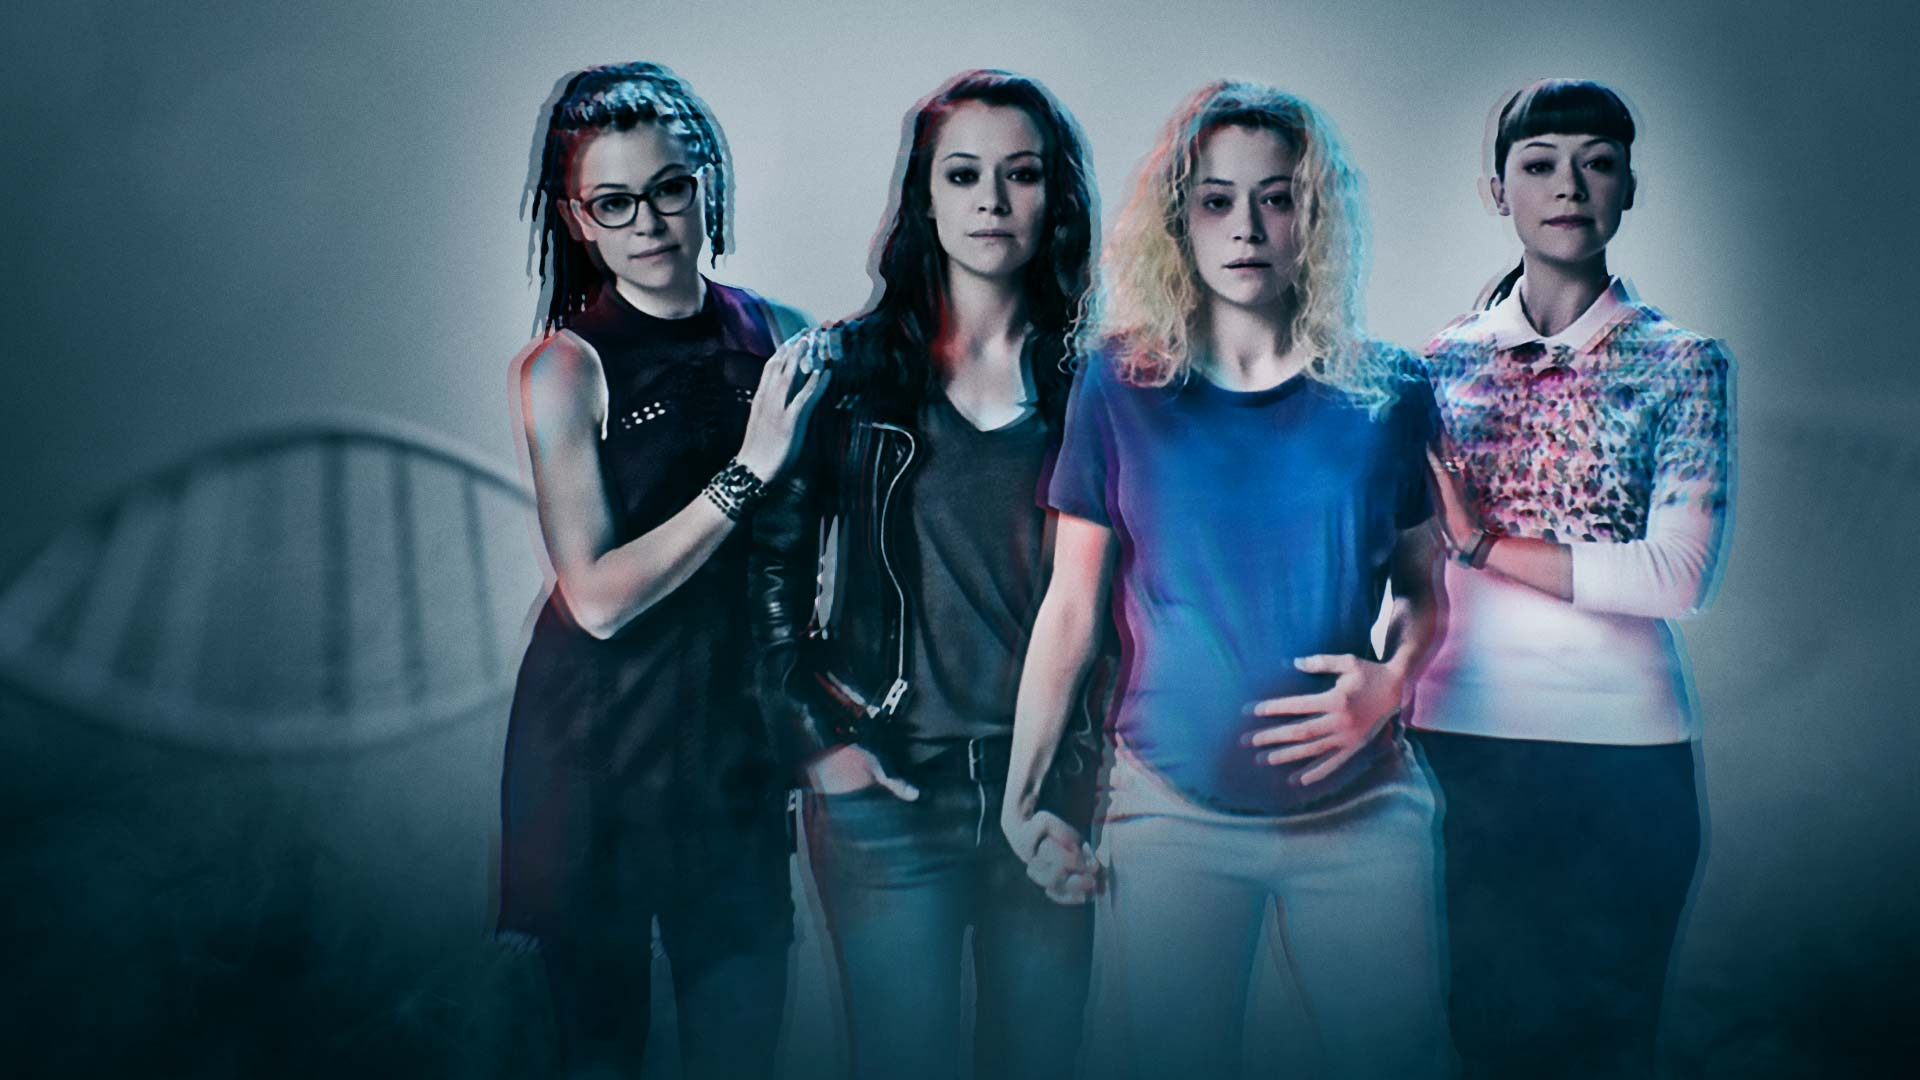 ORPHAN BLACK: THE NEXT CHAPTER - How The Writers Handled